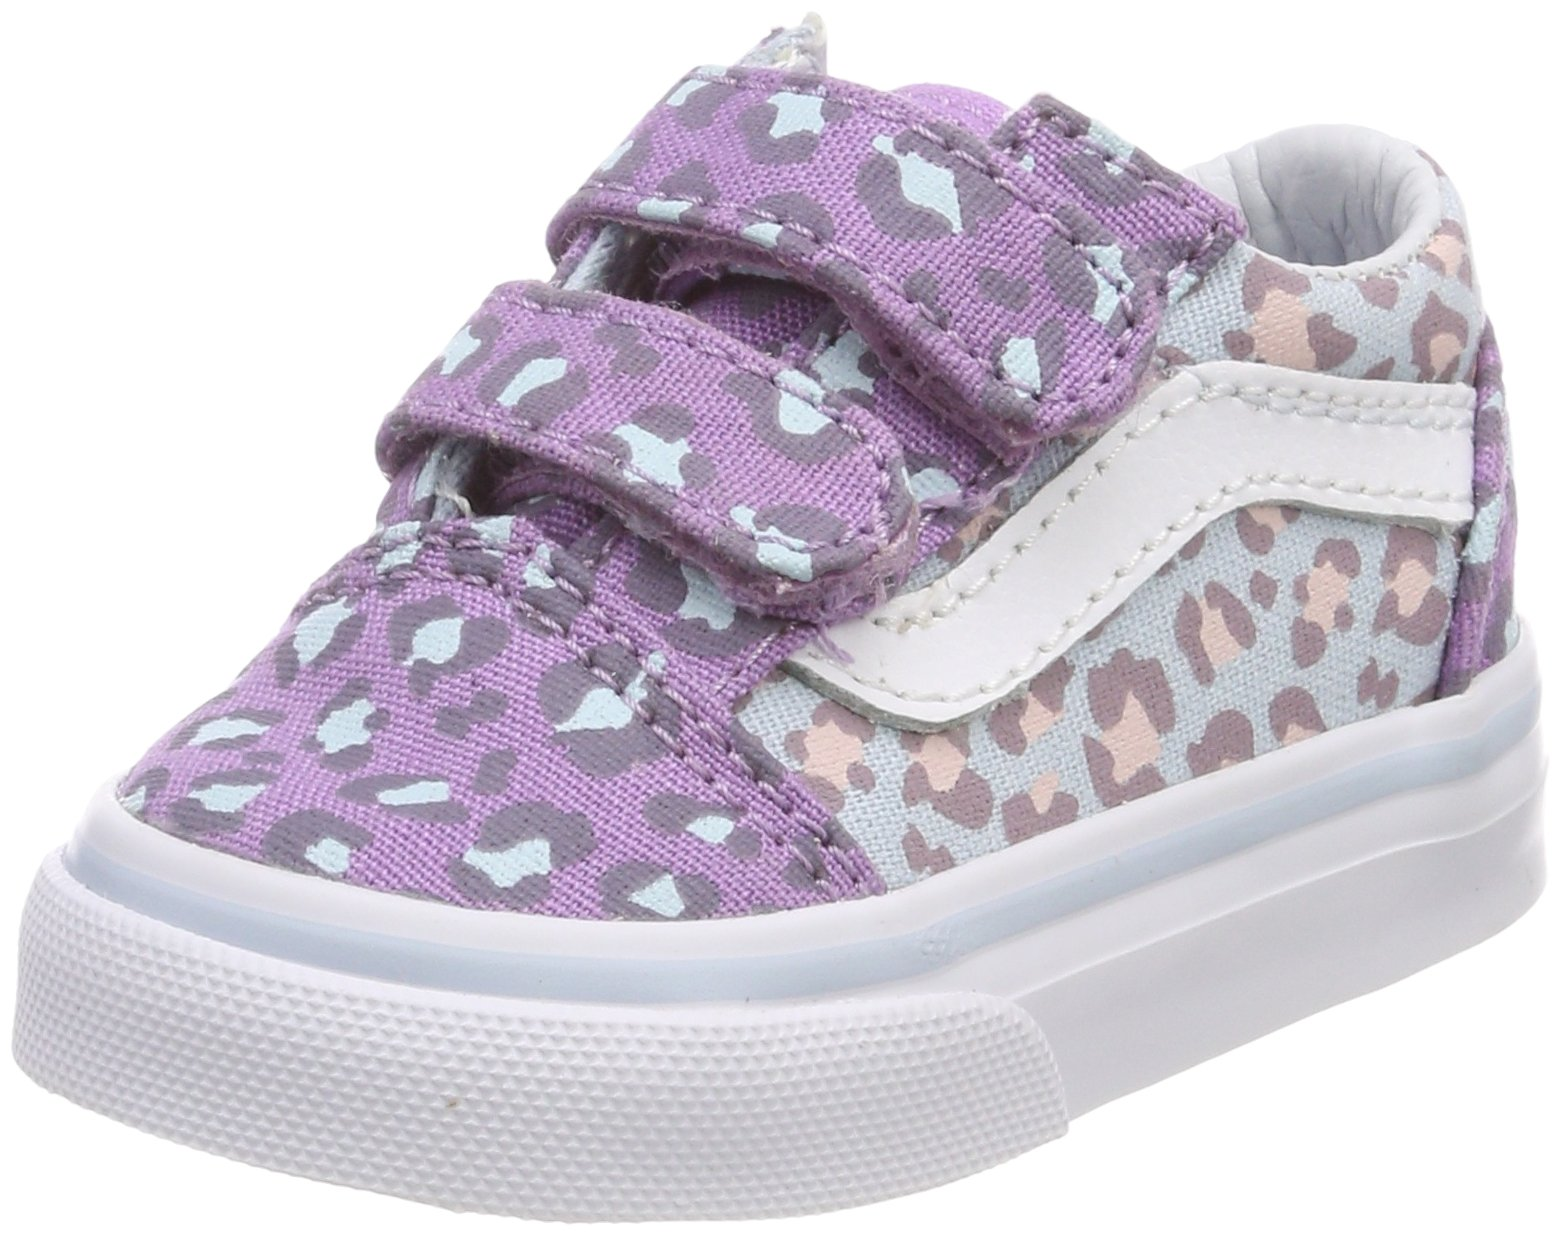 Vans Toddler Old Skool V VN0A344KQ7D (2-Tone Leopard) Baby Blue Diffused  Orchid Toddler 7 f39df7a79